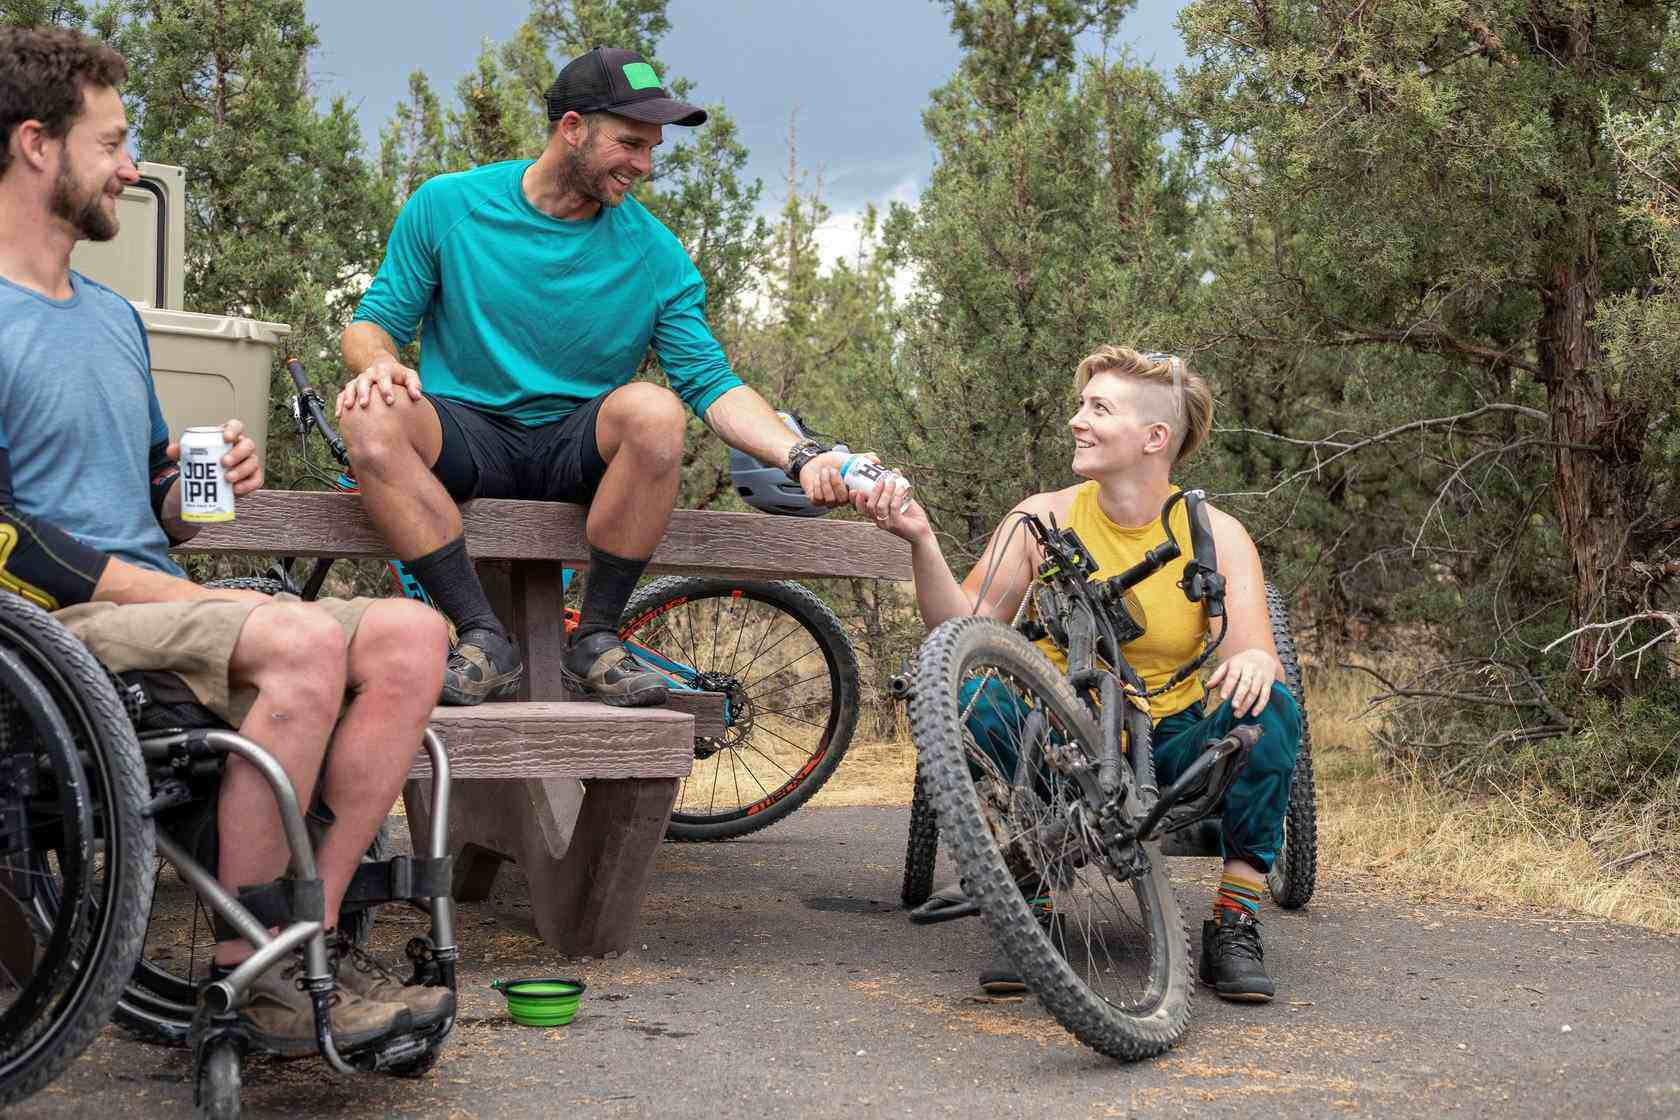 People with disabilities on bikes